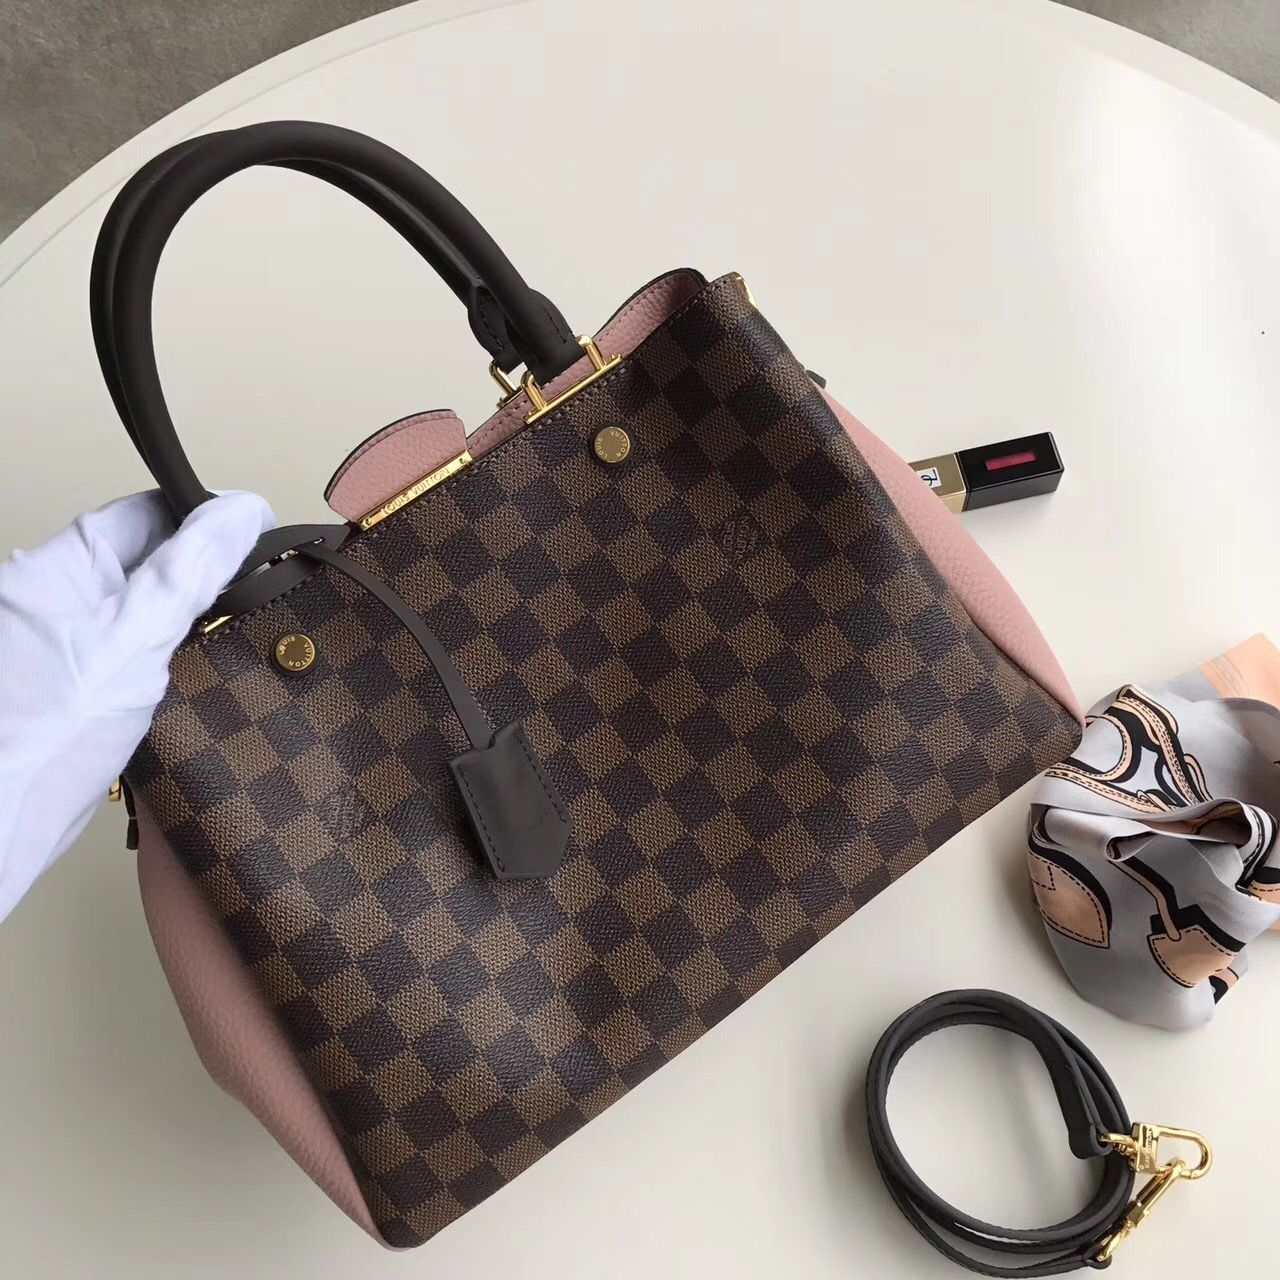 d0295bb8ad7 The BEST Louis Vuitton Brittany Counter Quality Replica Available Online!  Experience the Designer Discreet difference by shopping with us today!